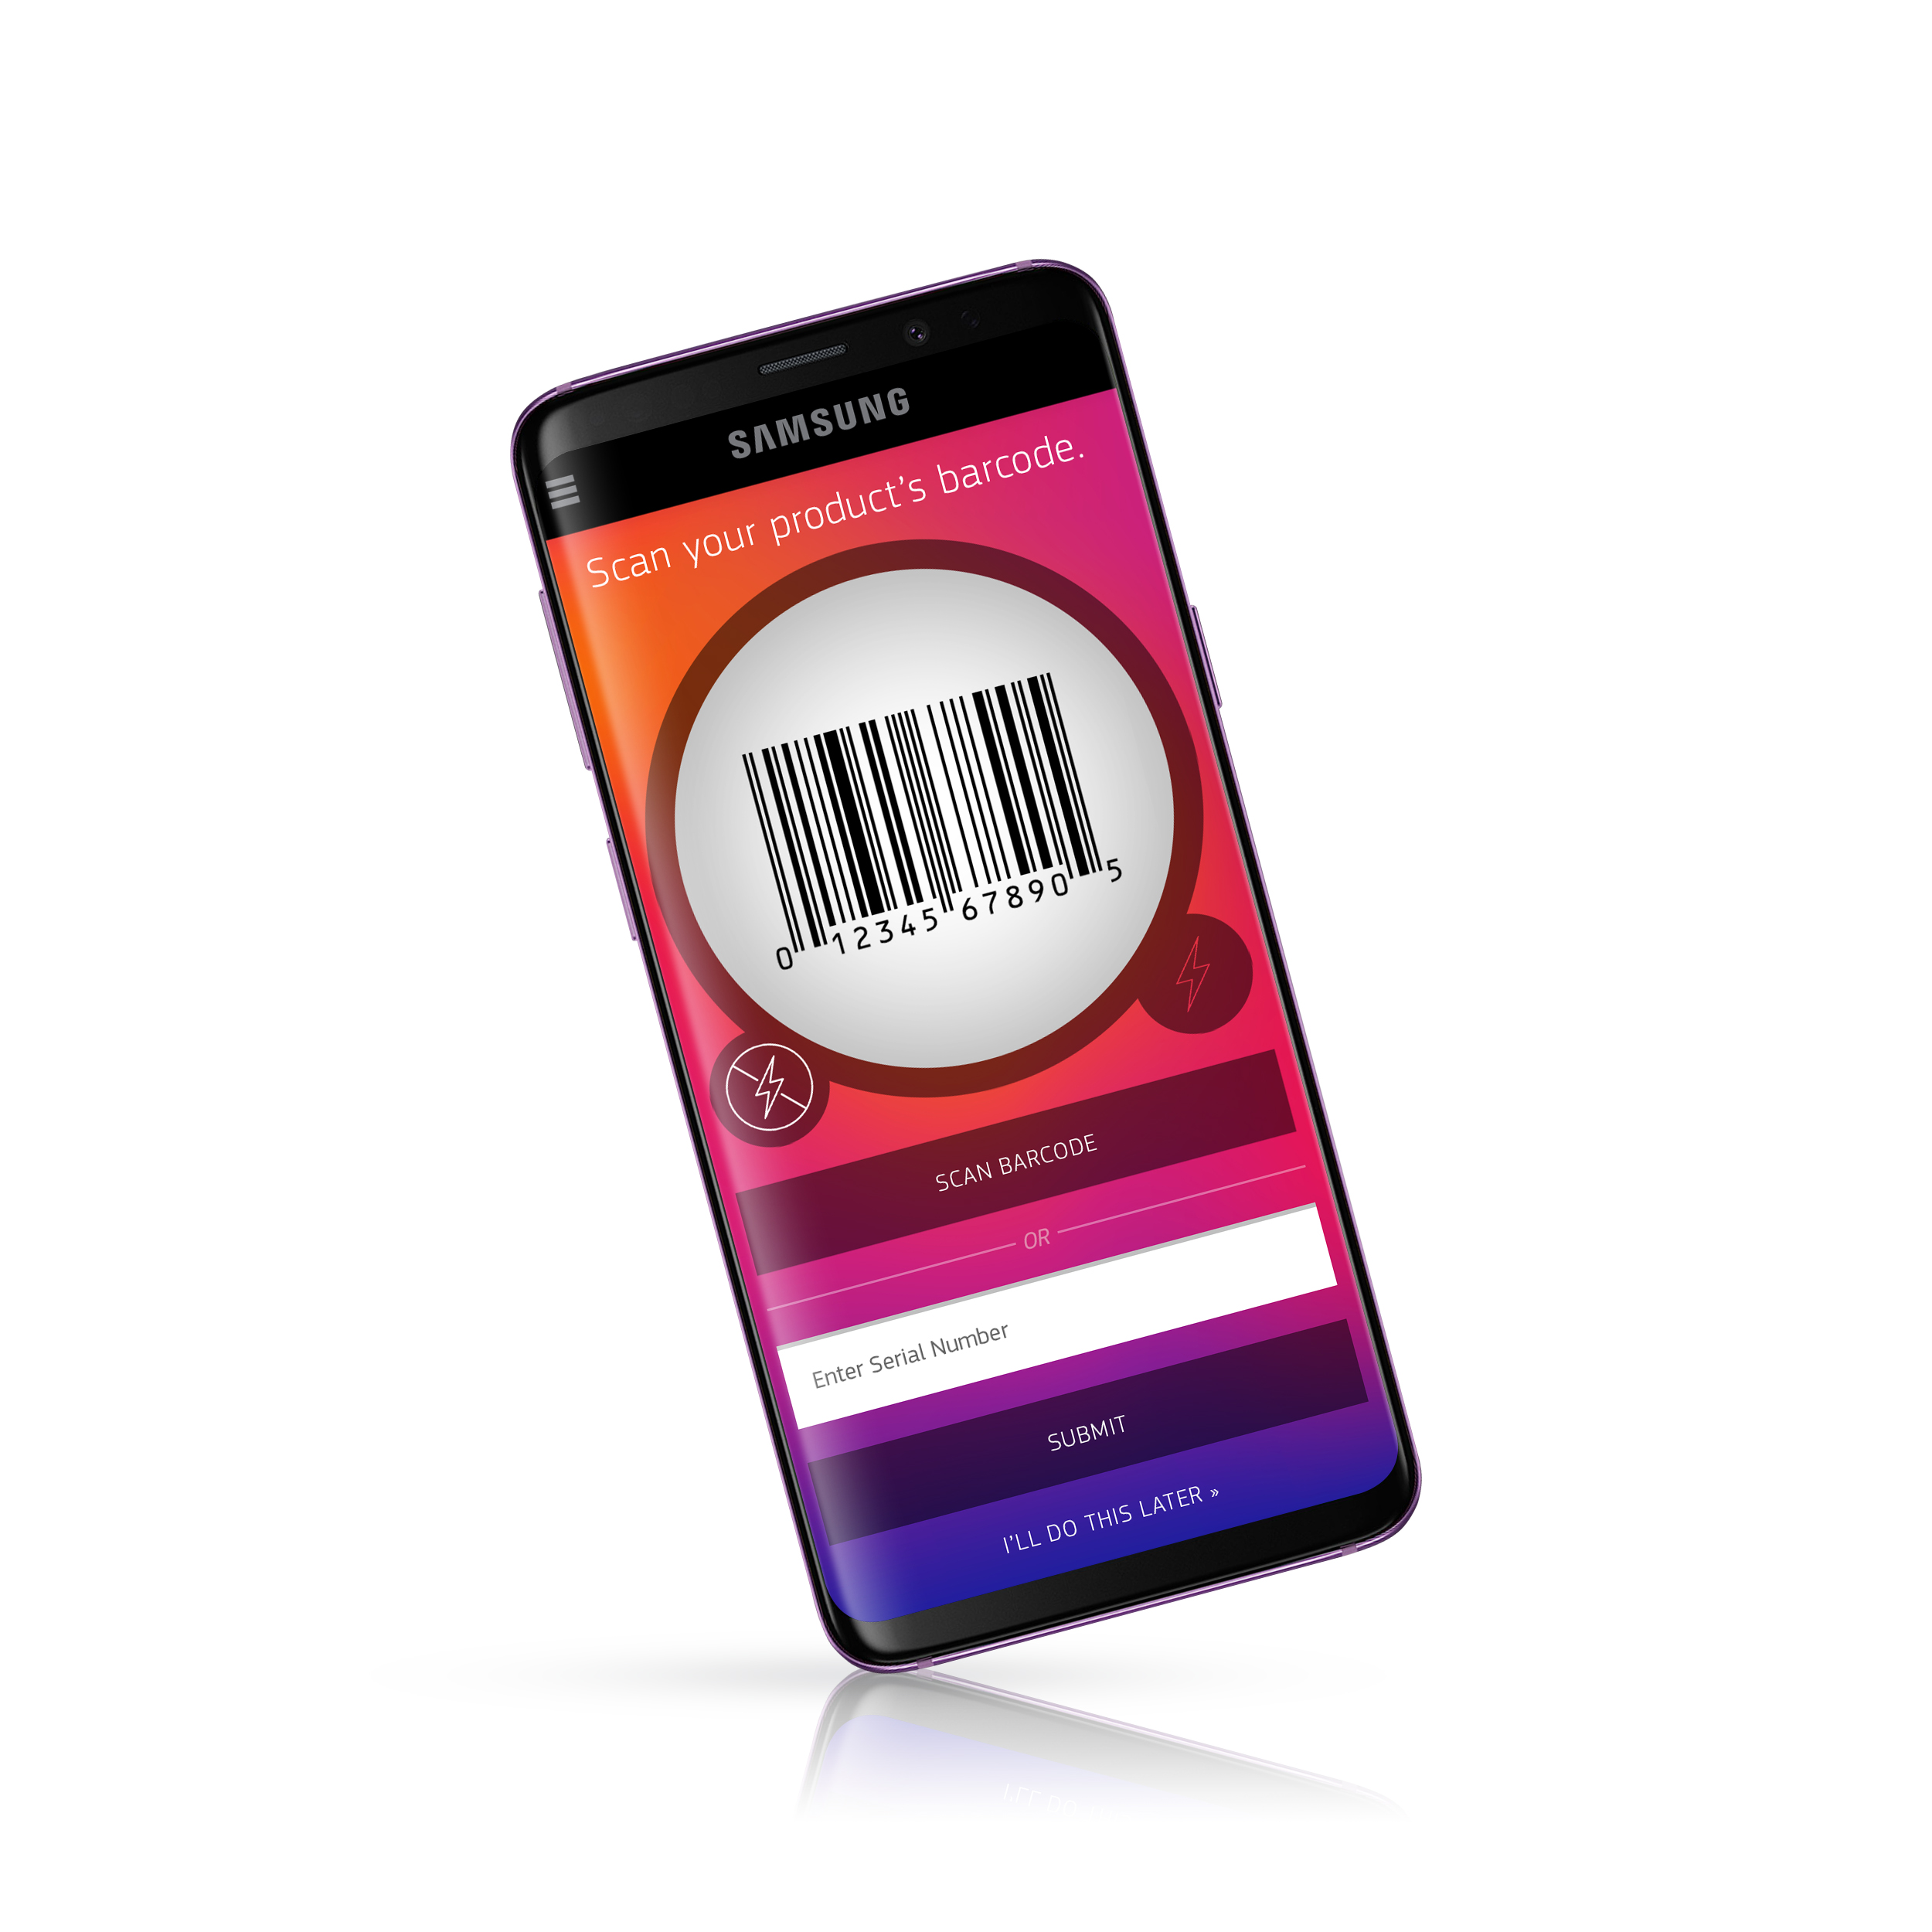 Product Scanner - Users can easily scan the barcode from recent purchases to register them in the app and gain future support and information about updates.